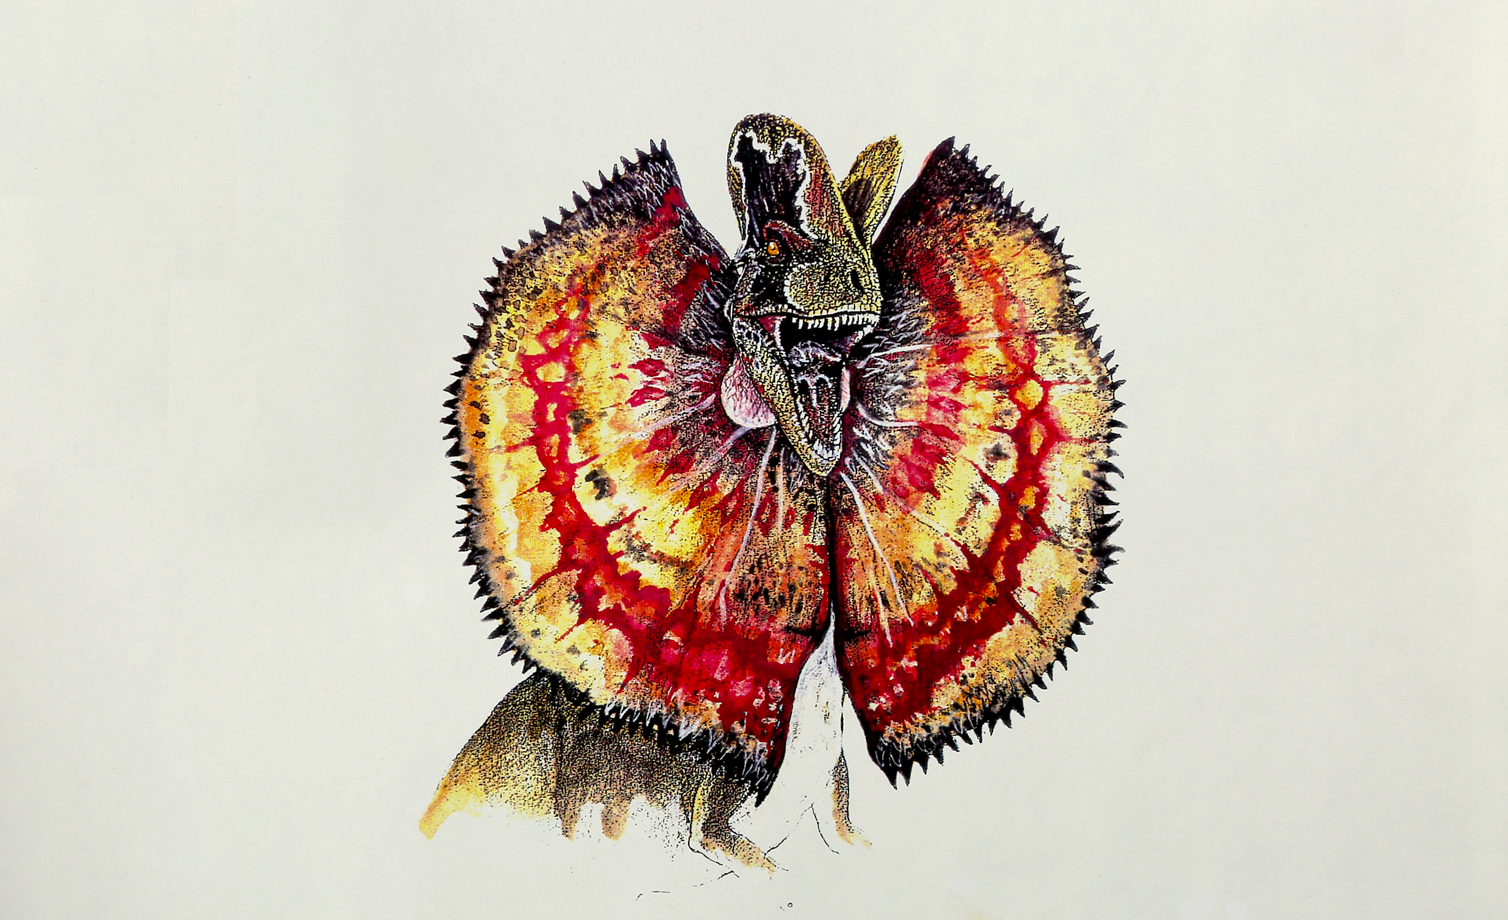 Jurassic Time Interviews Creature Artist Rick Galinson About The Dilophosaurus' Hidden Venom Sacs